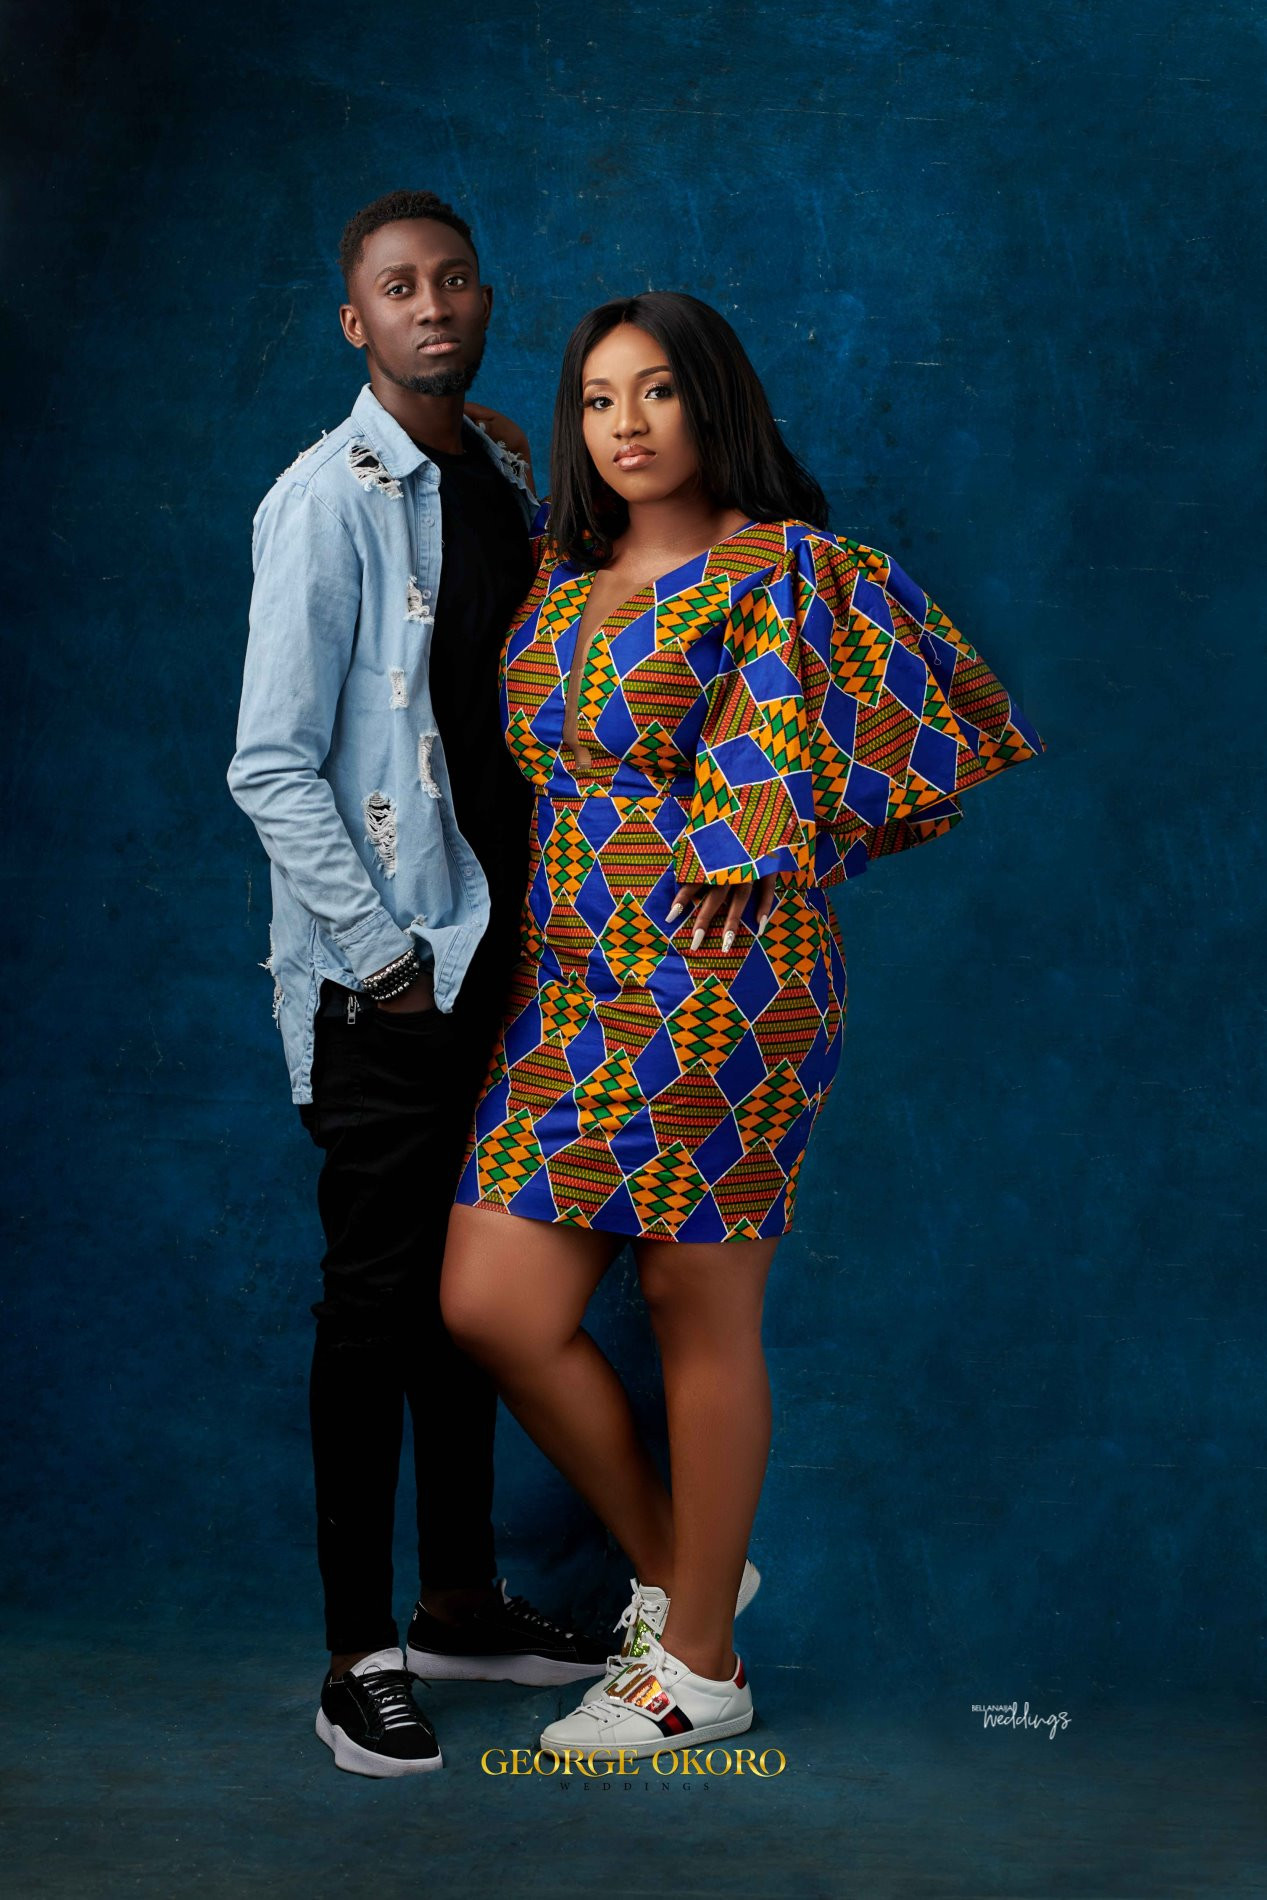 Check out stunning pre-wedding photos of Super Eagles star Wilfred Ndidi and his lover, Dinma